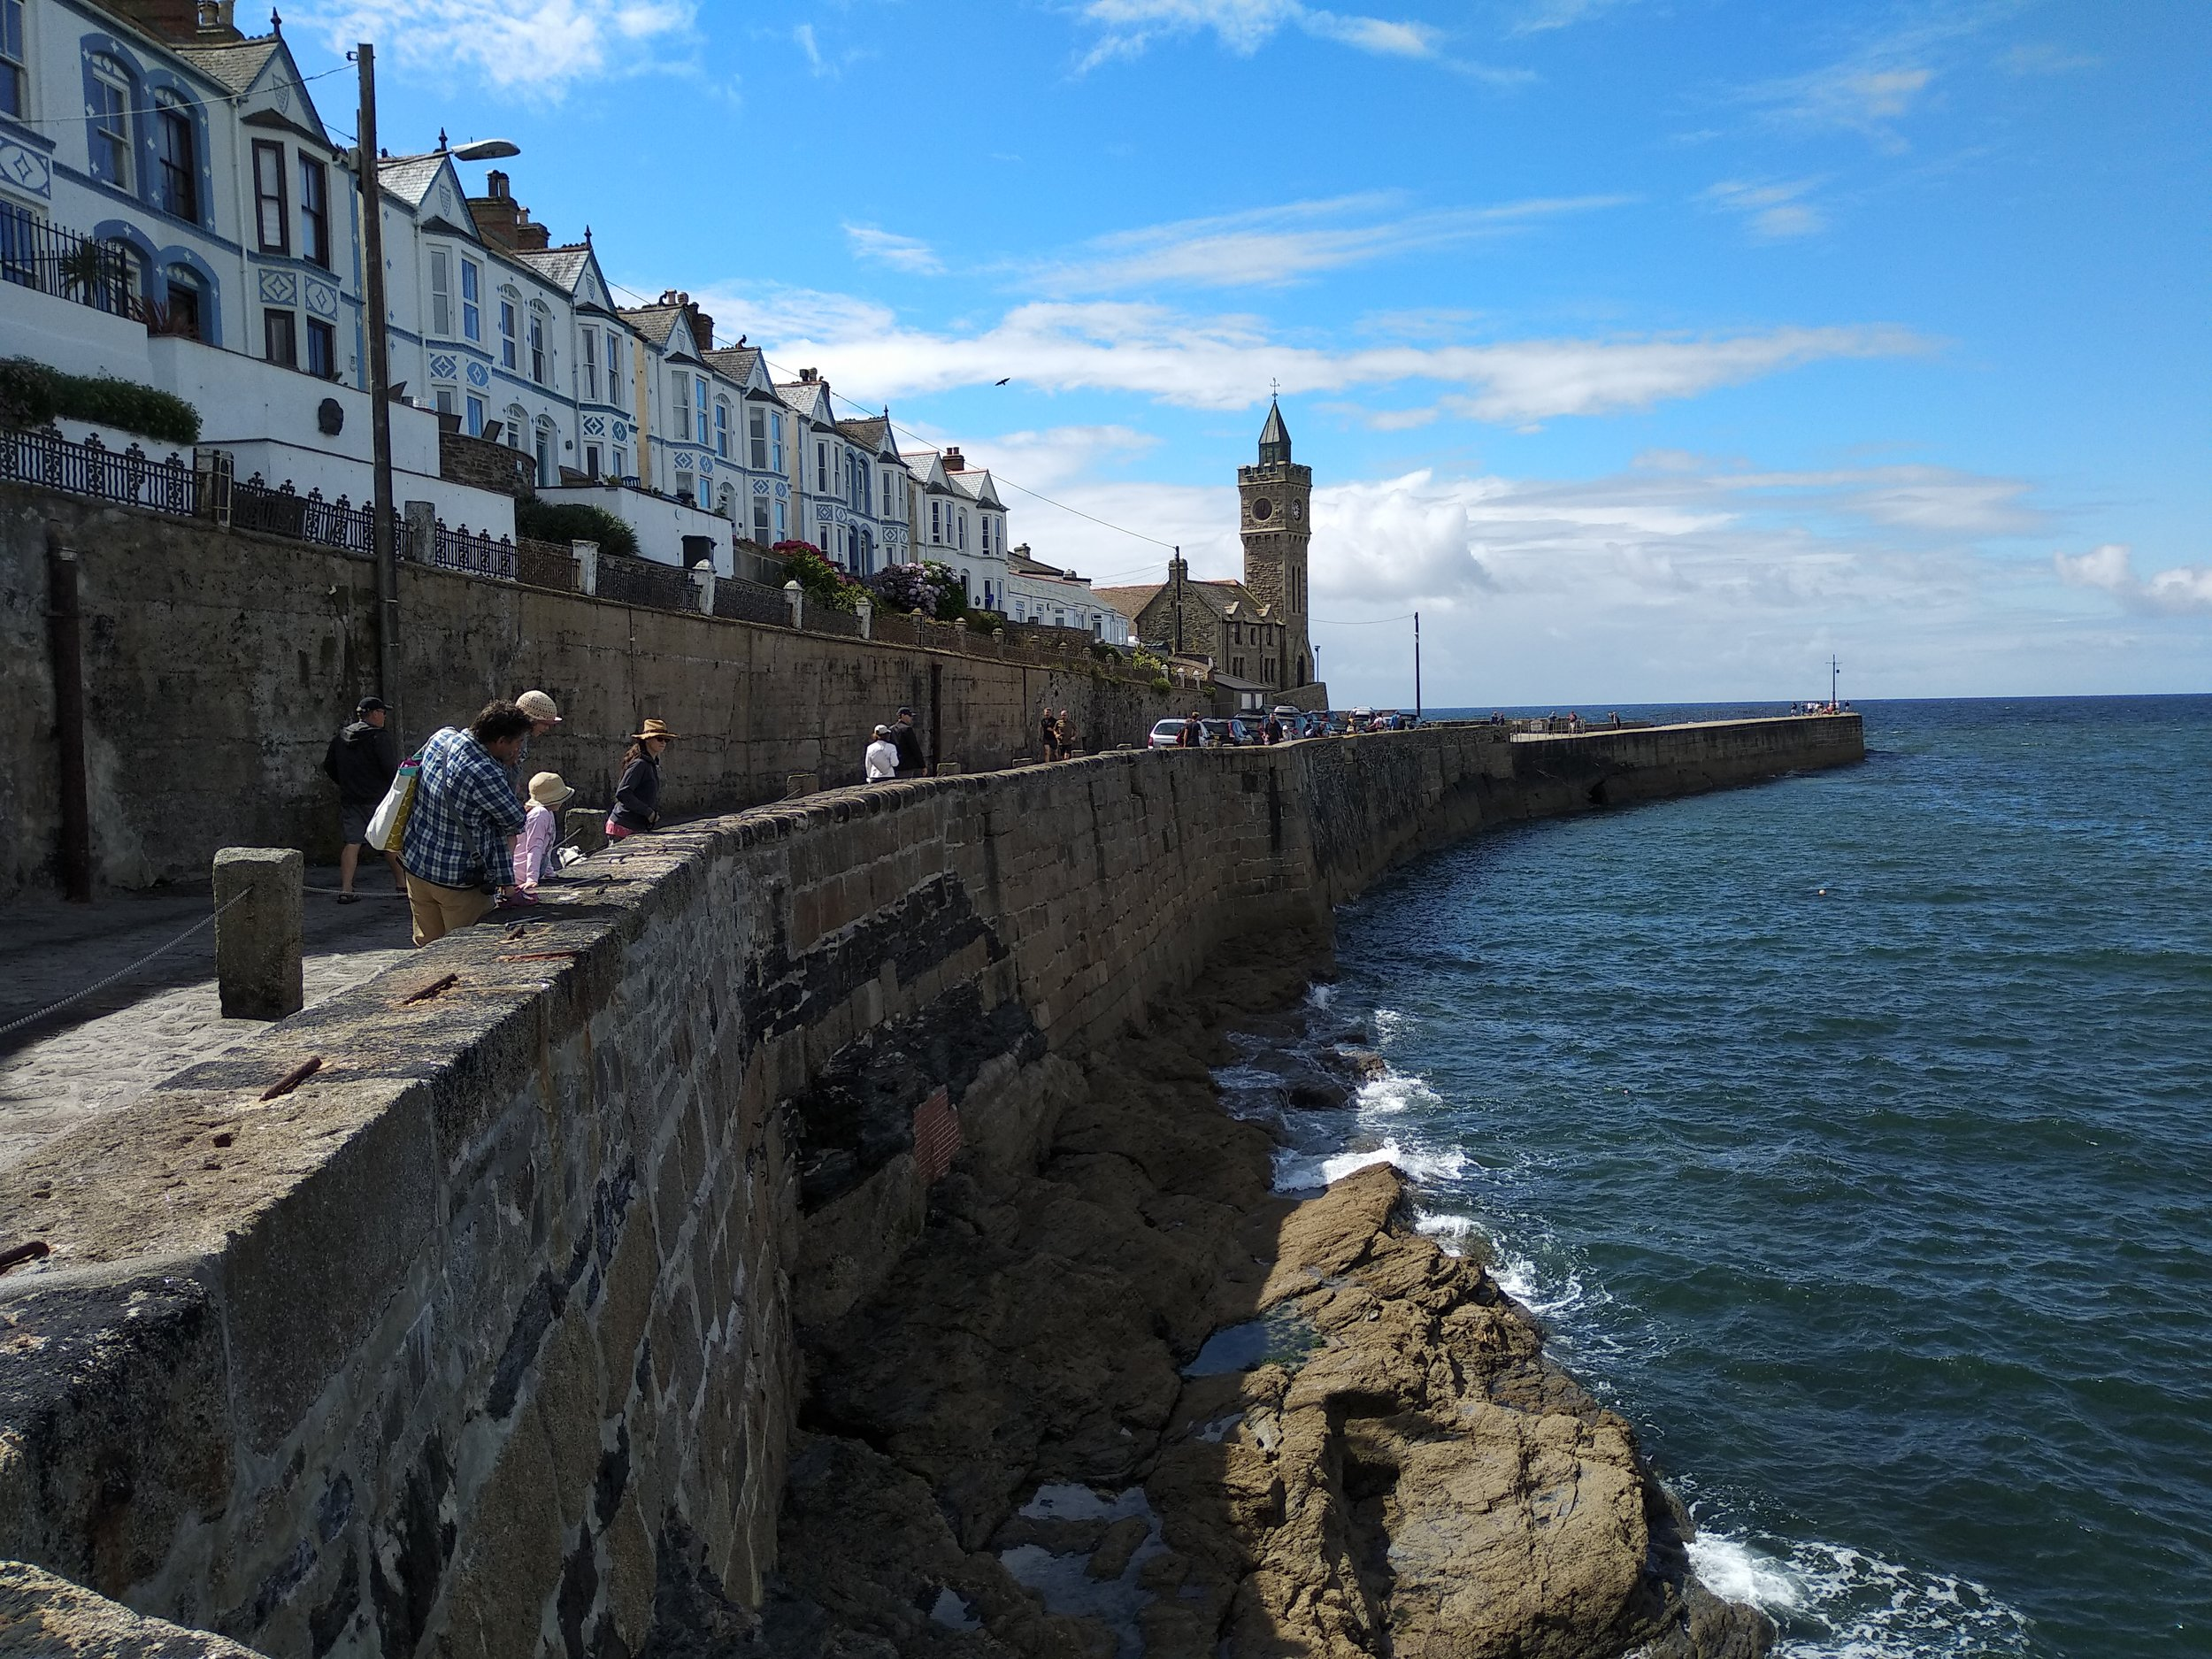 The harbor-front at Porthleven, a biggish town with the most southerly port in the UK.